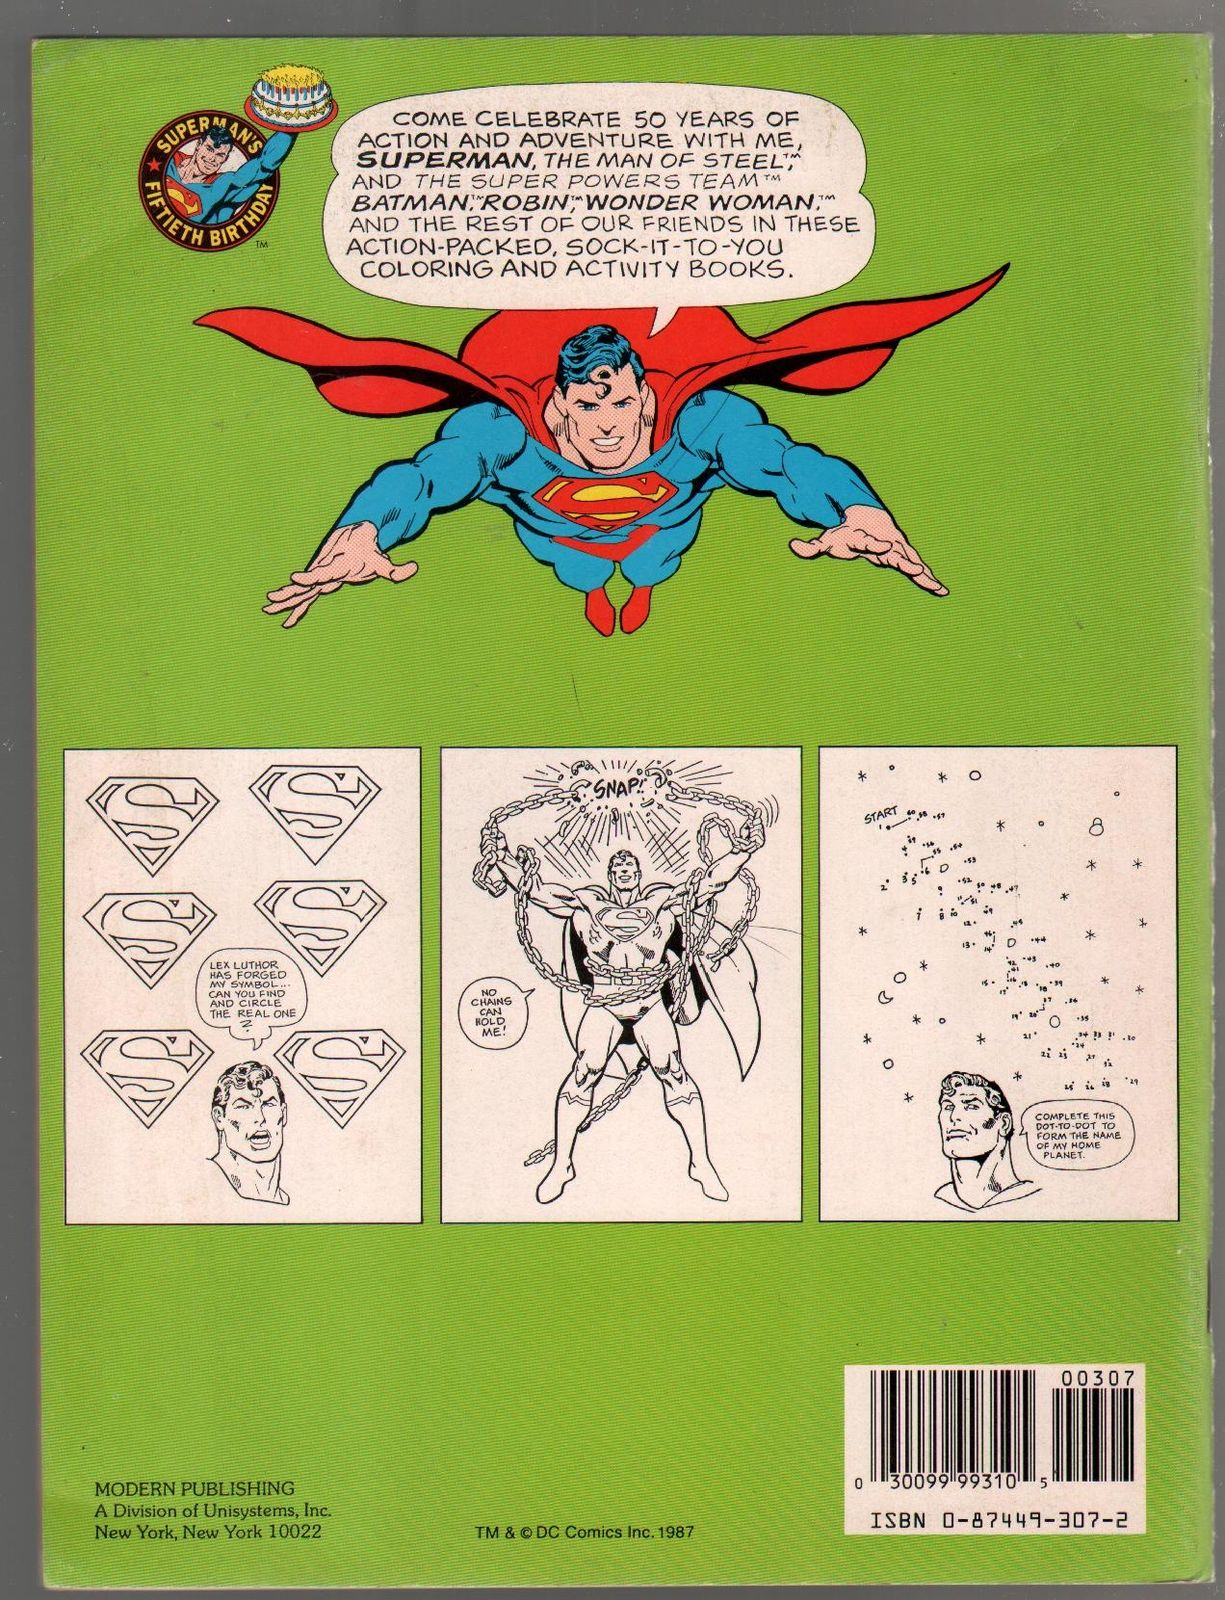 Superman Coloring And Activity Book 1987 50th Anniversary VF HipComic